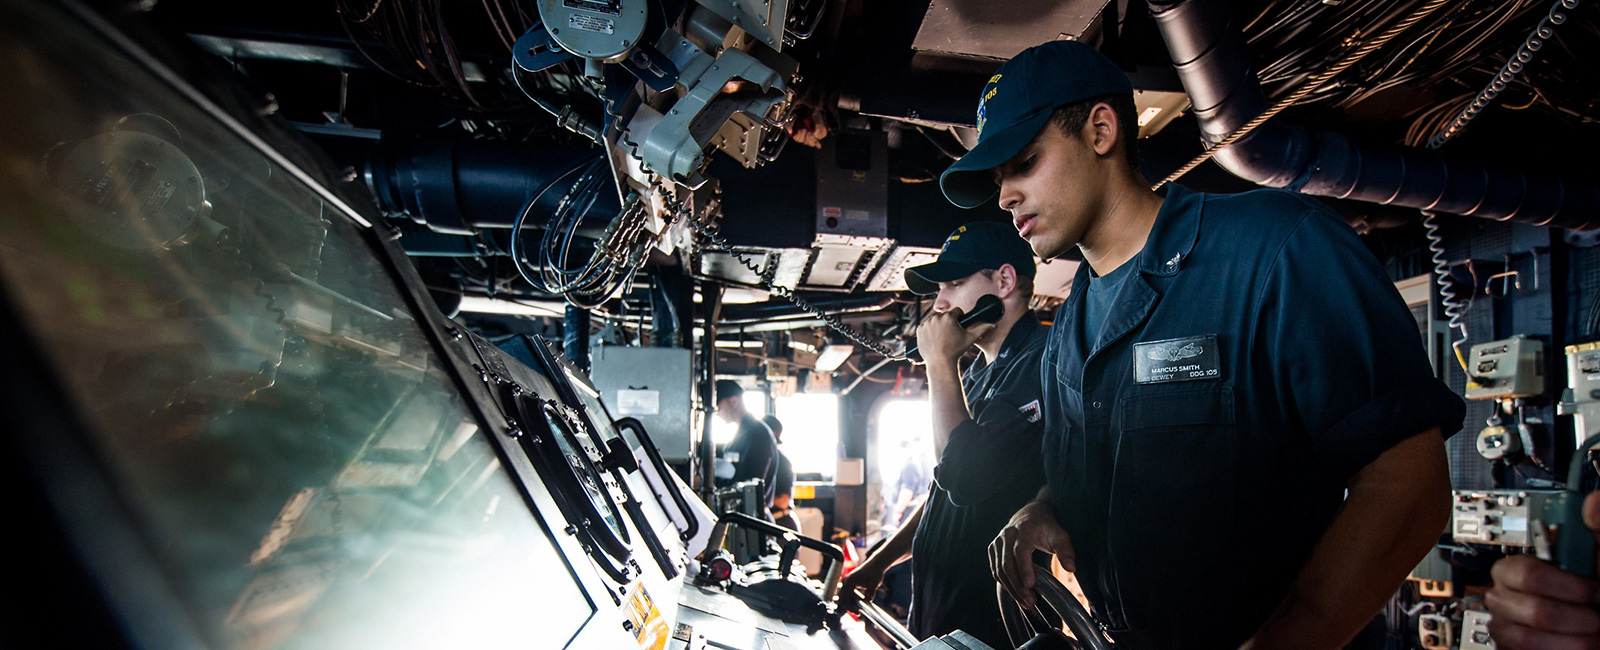 Sonar Technician (Surface) 3rd Class Marcus Smith stands helm watch aboard the guided-missile destroyer USS Dewey (DDG 105) during a replenishment-at-sea.